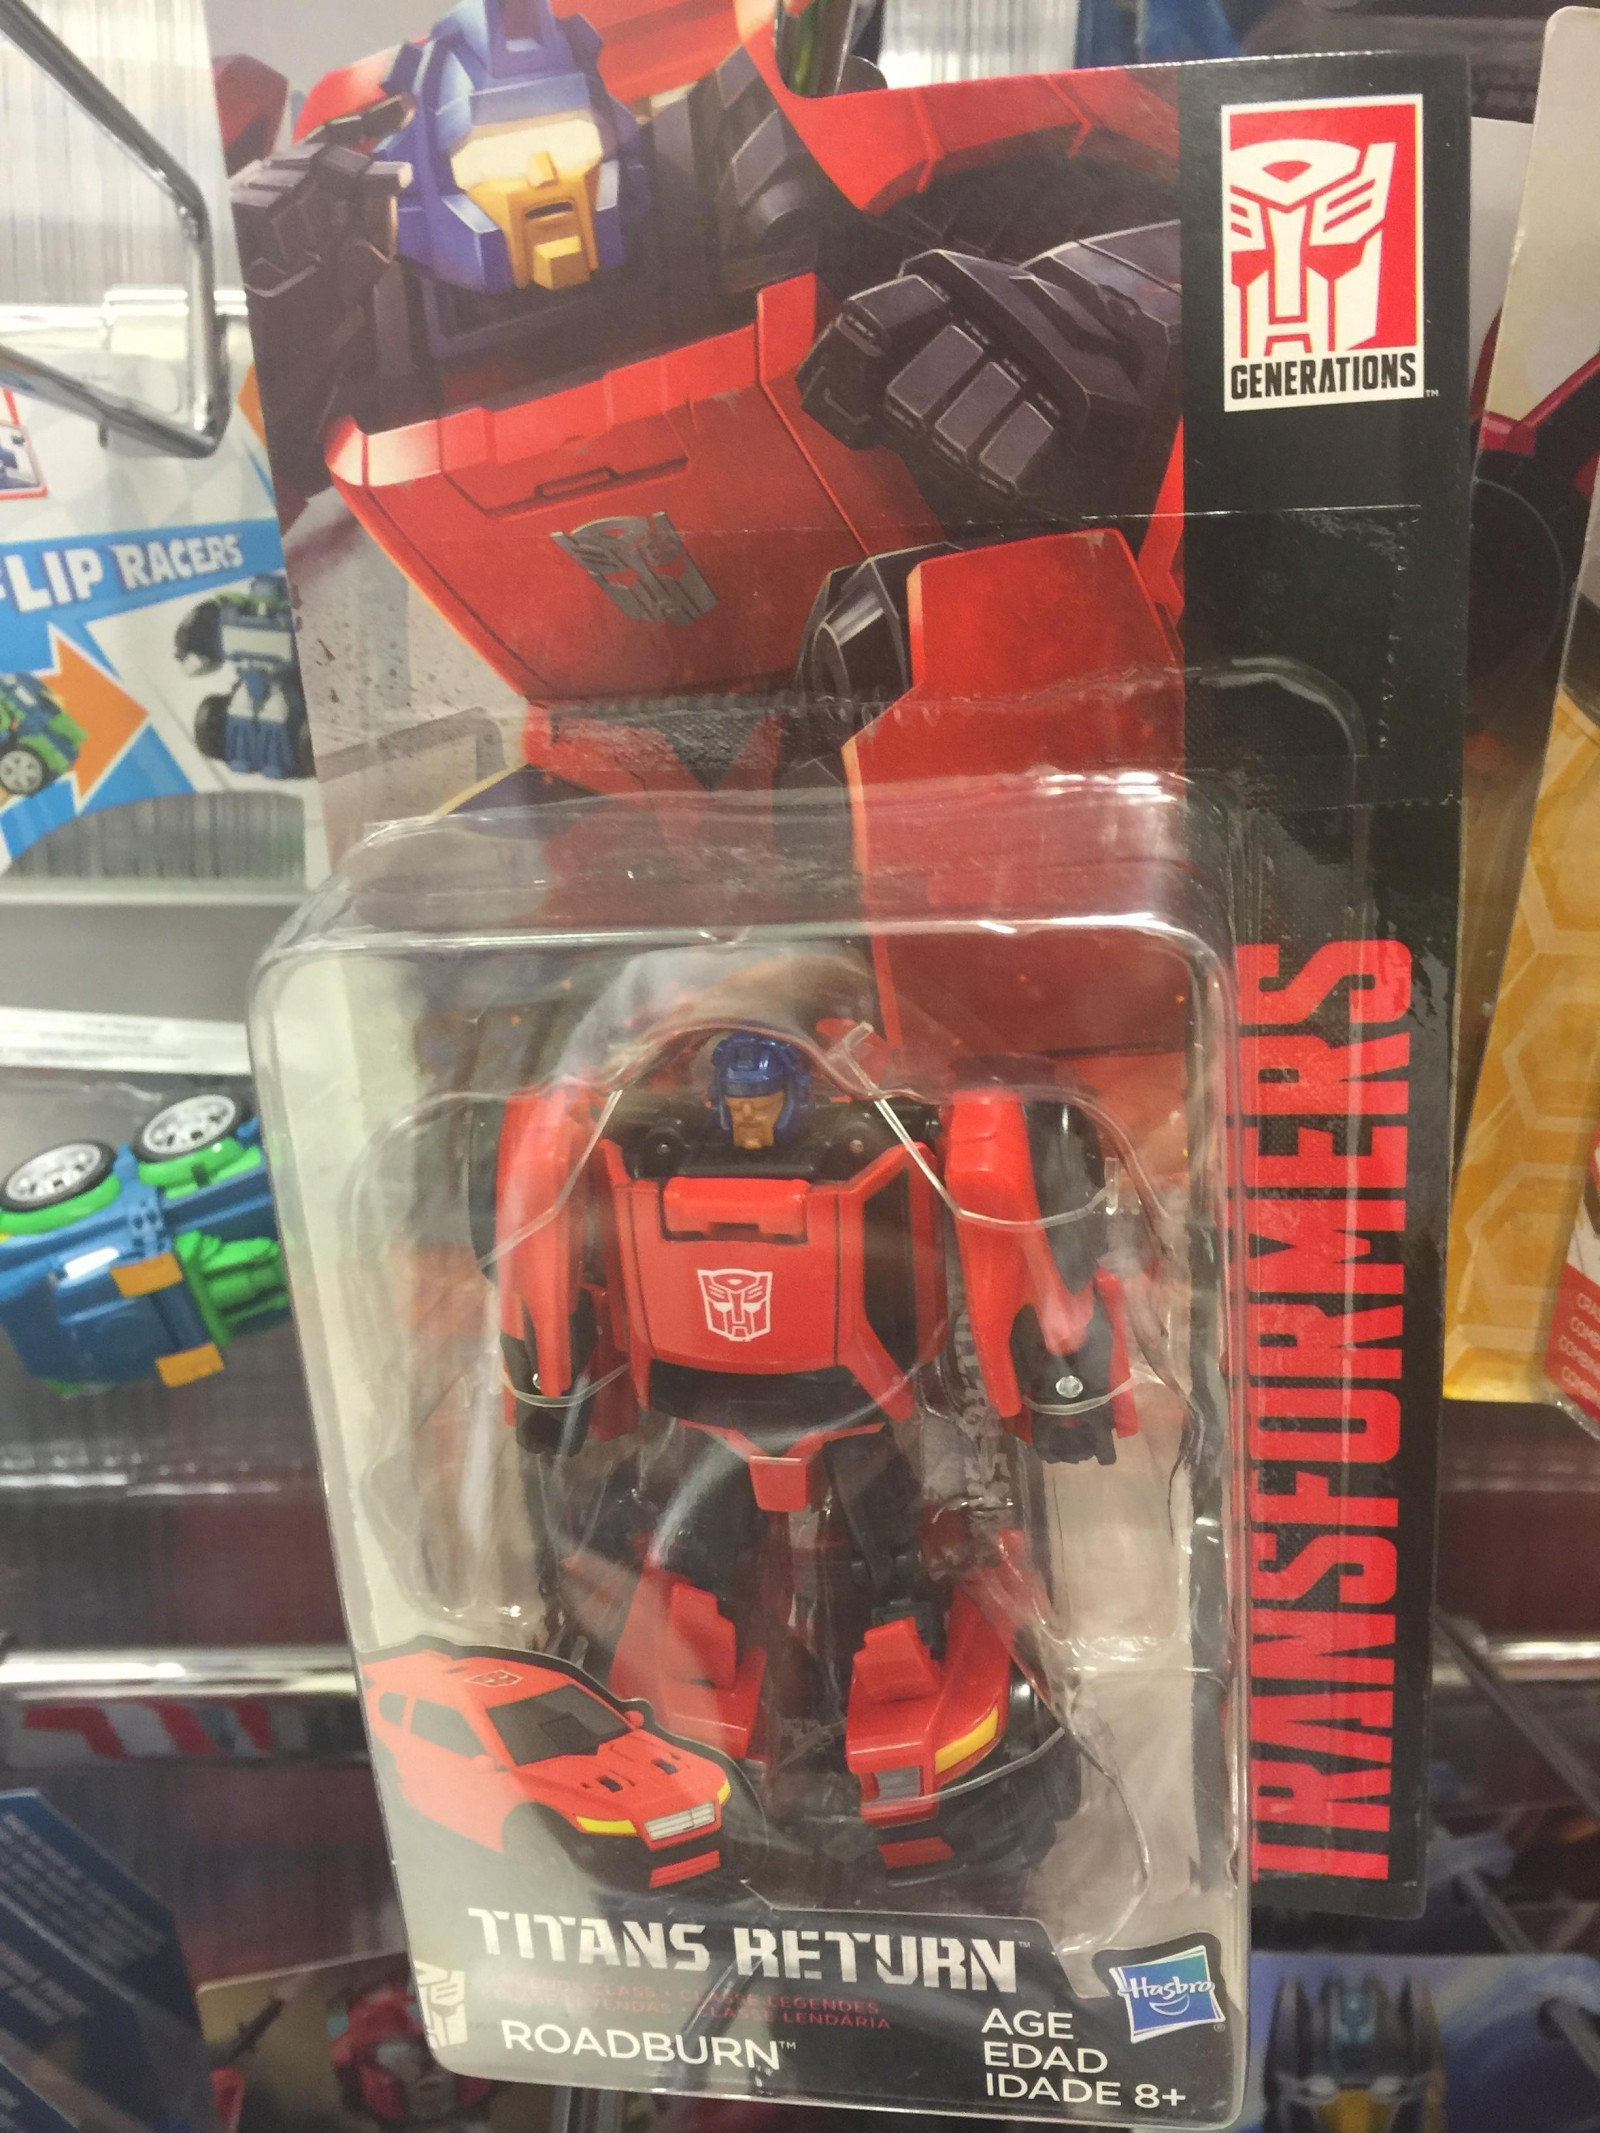 Transformers News: Steal of a Deal: 5$ Titan Masters at Kmart in Canberra, Australia Plus Roadburn Sighting!